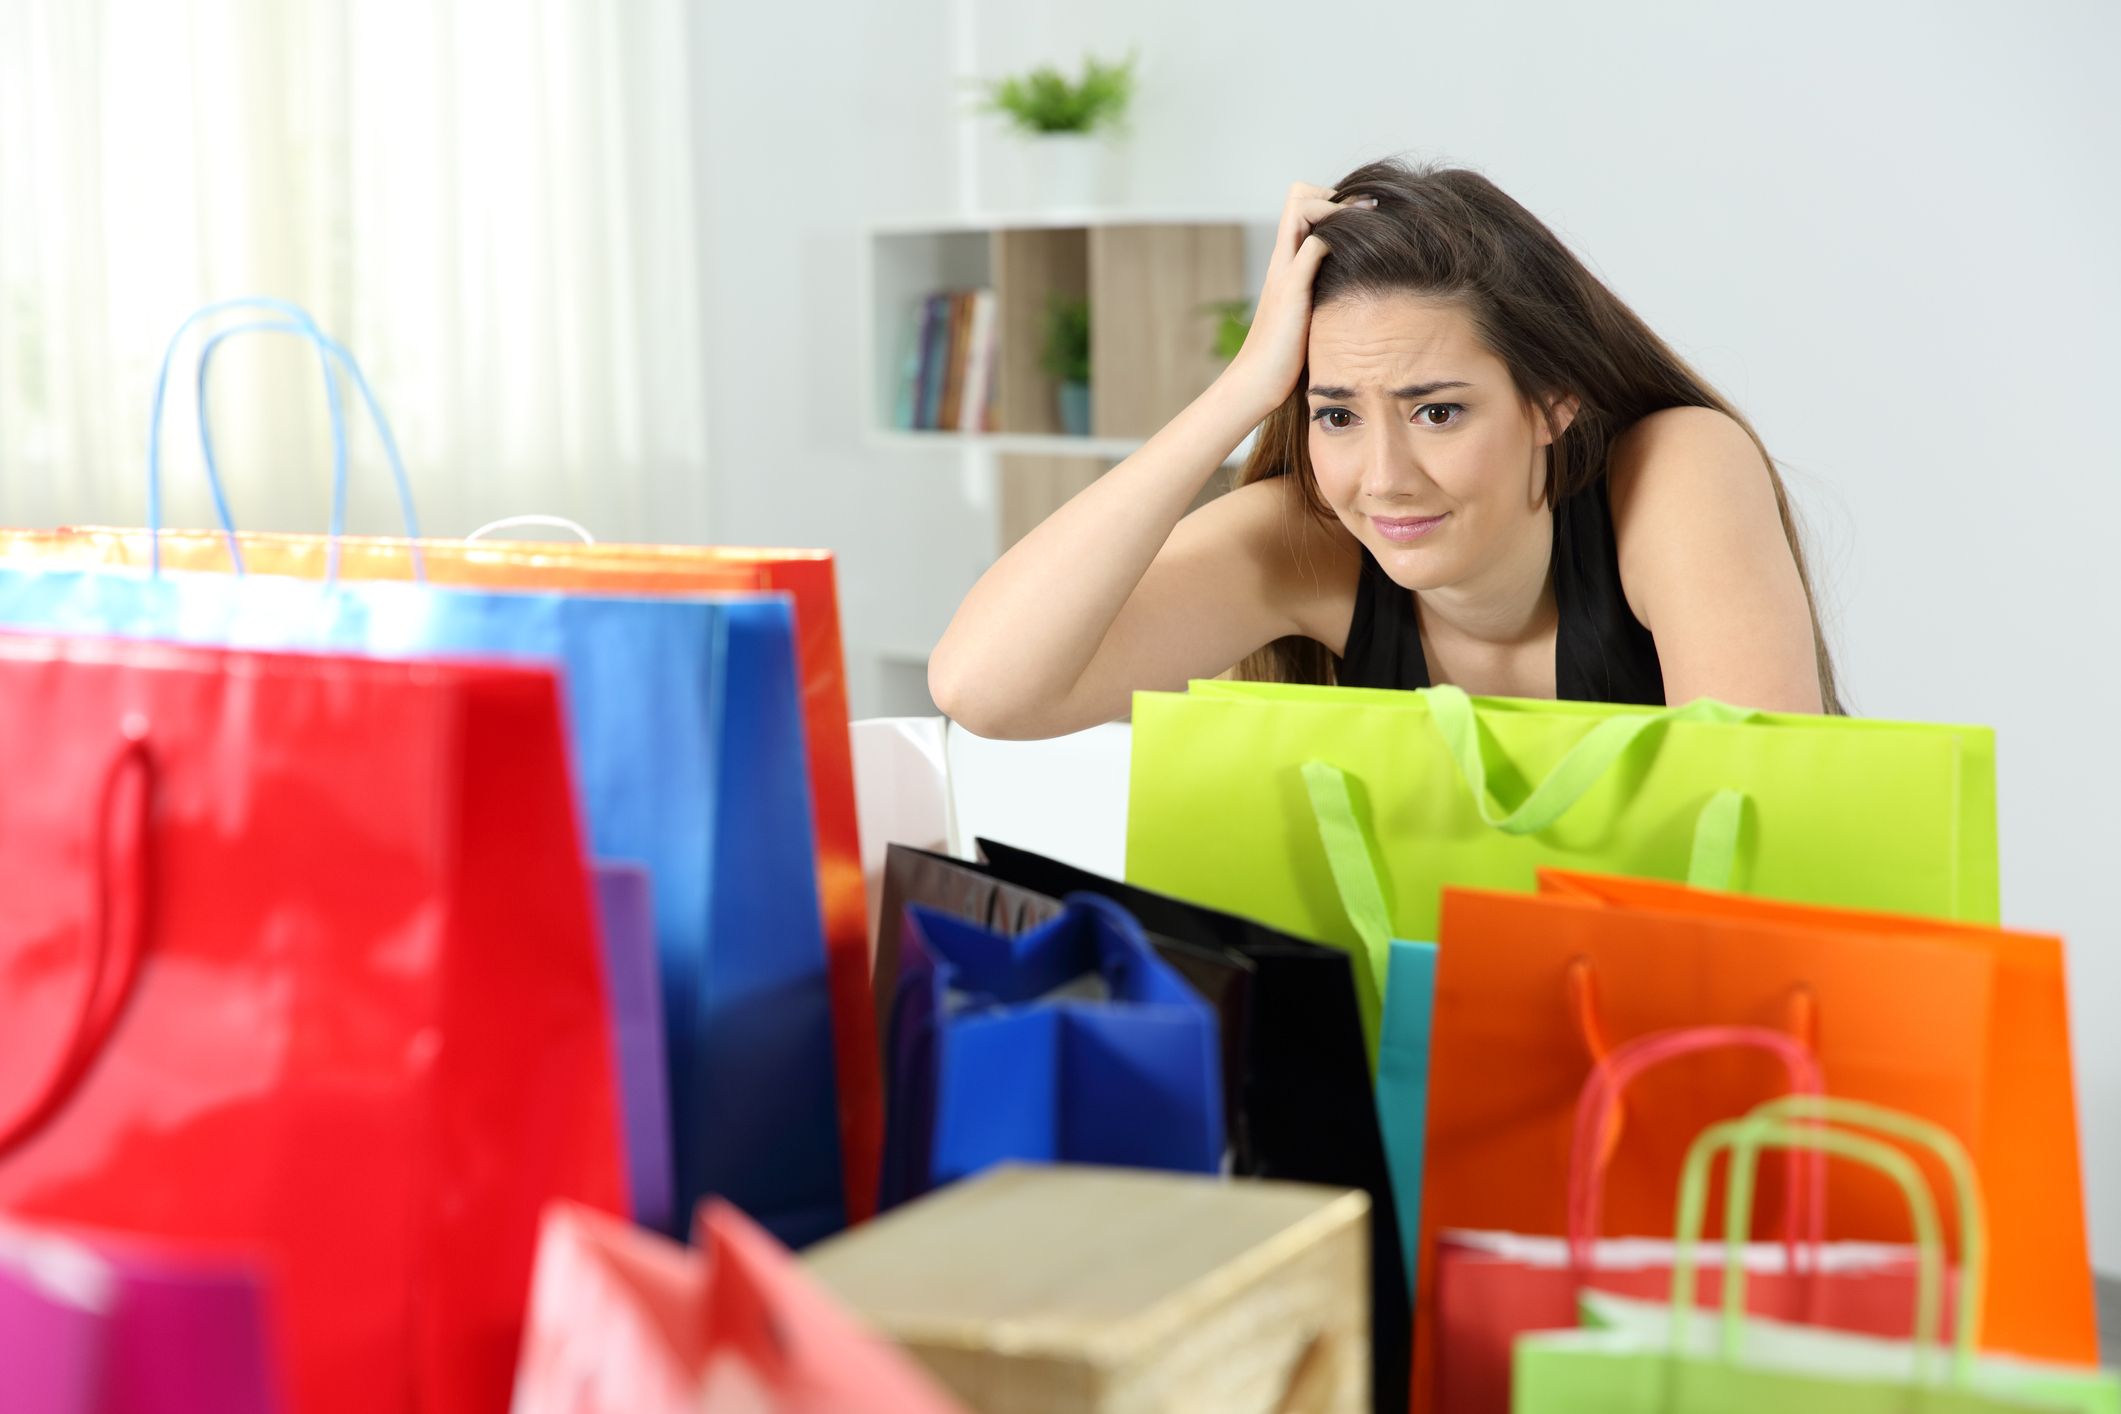 Woman in her home and freaking out as she looks at a bunch of shopping bags.